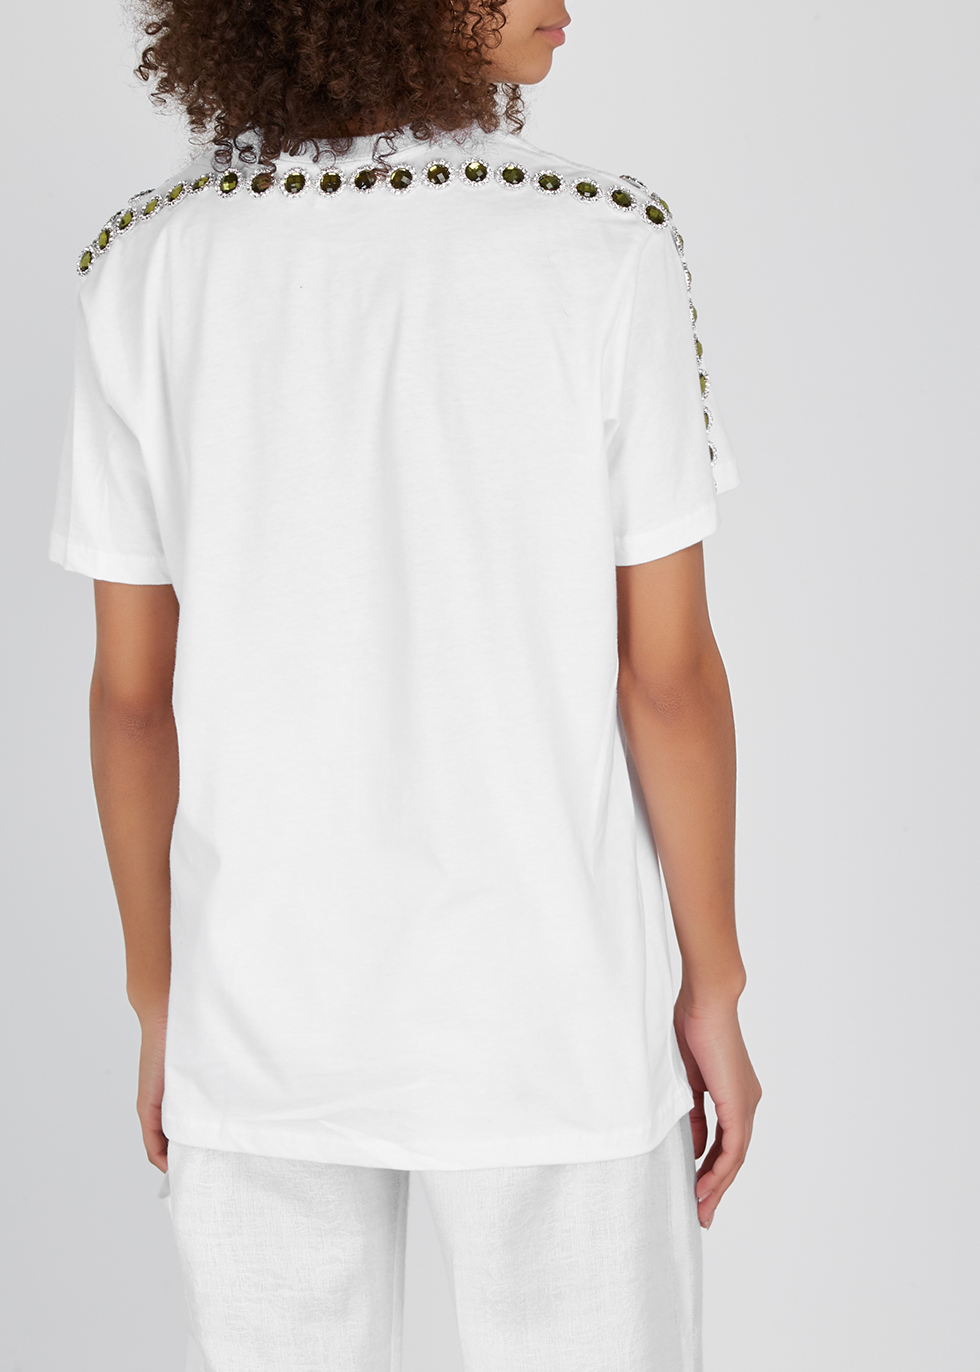 Higher Power crystal-embellished cotton T-shirt - Collina Strada